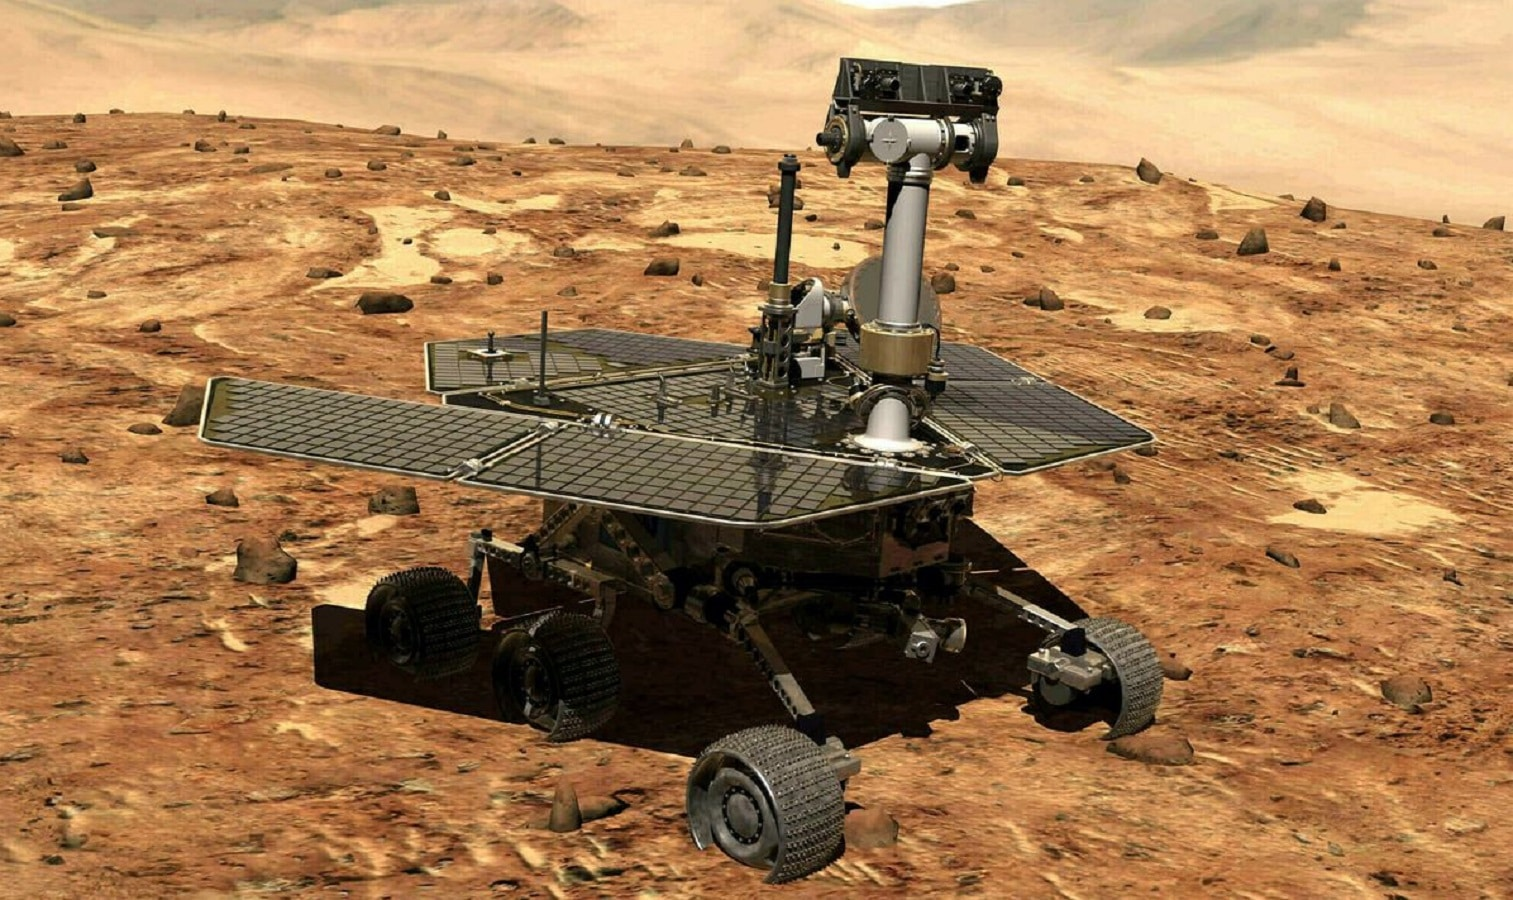 opportunity rover on mars